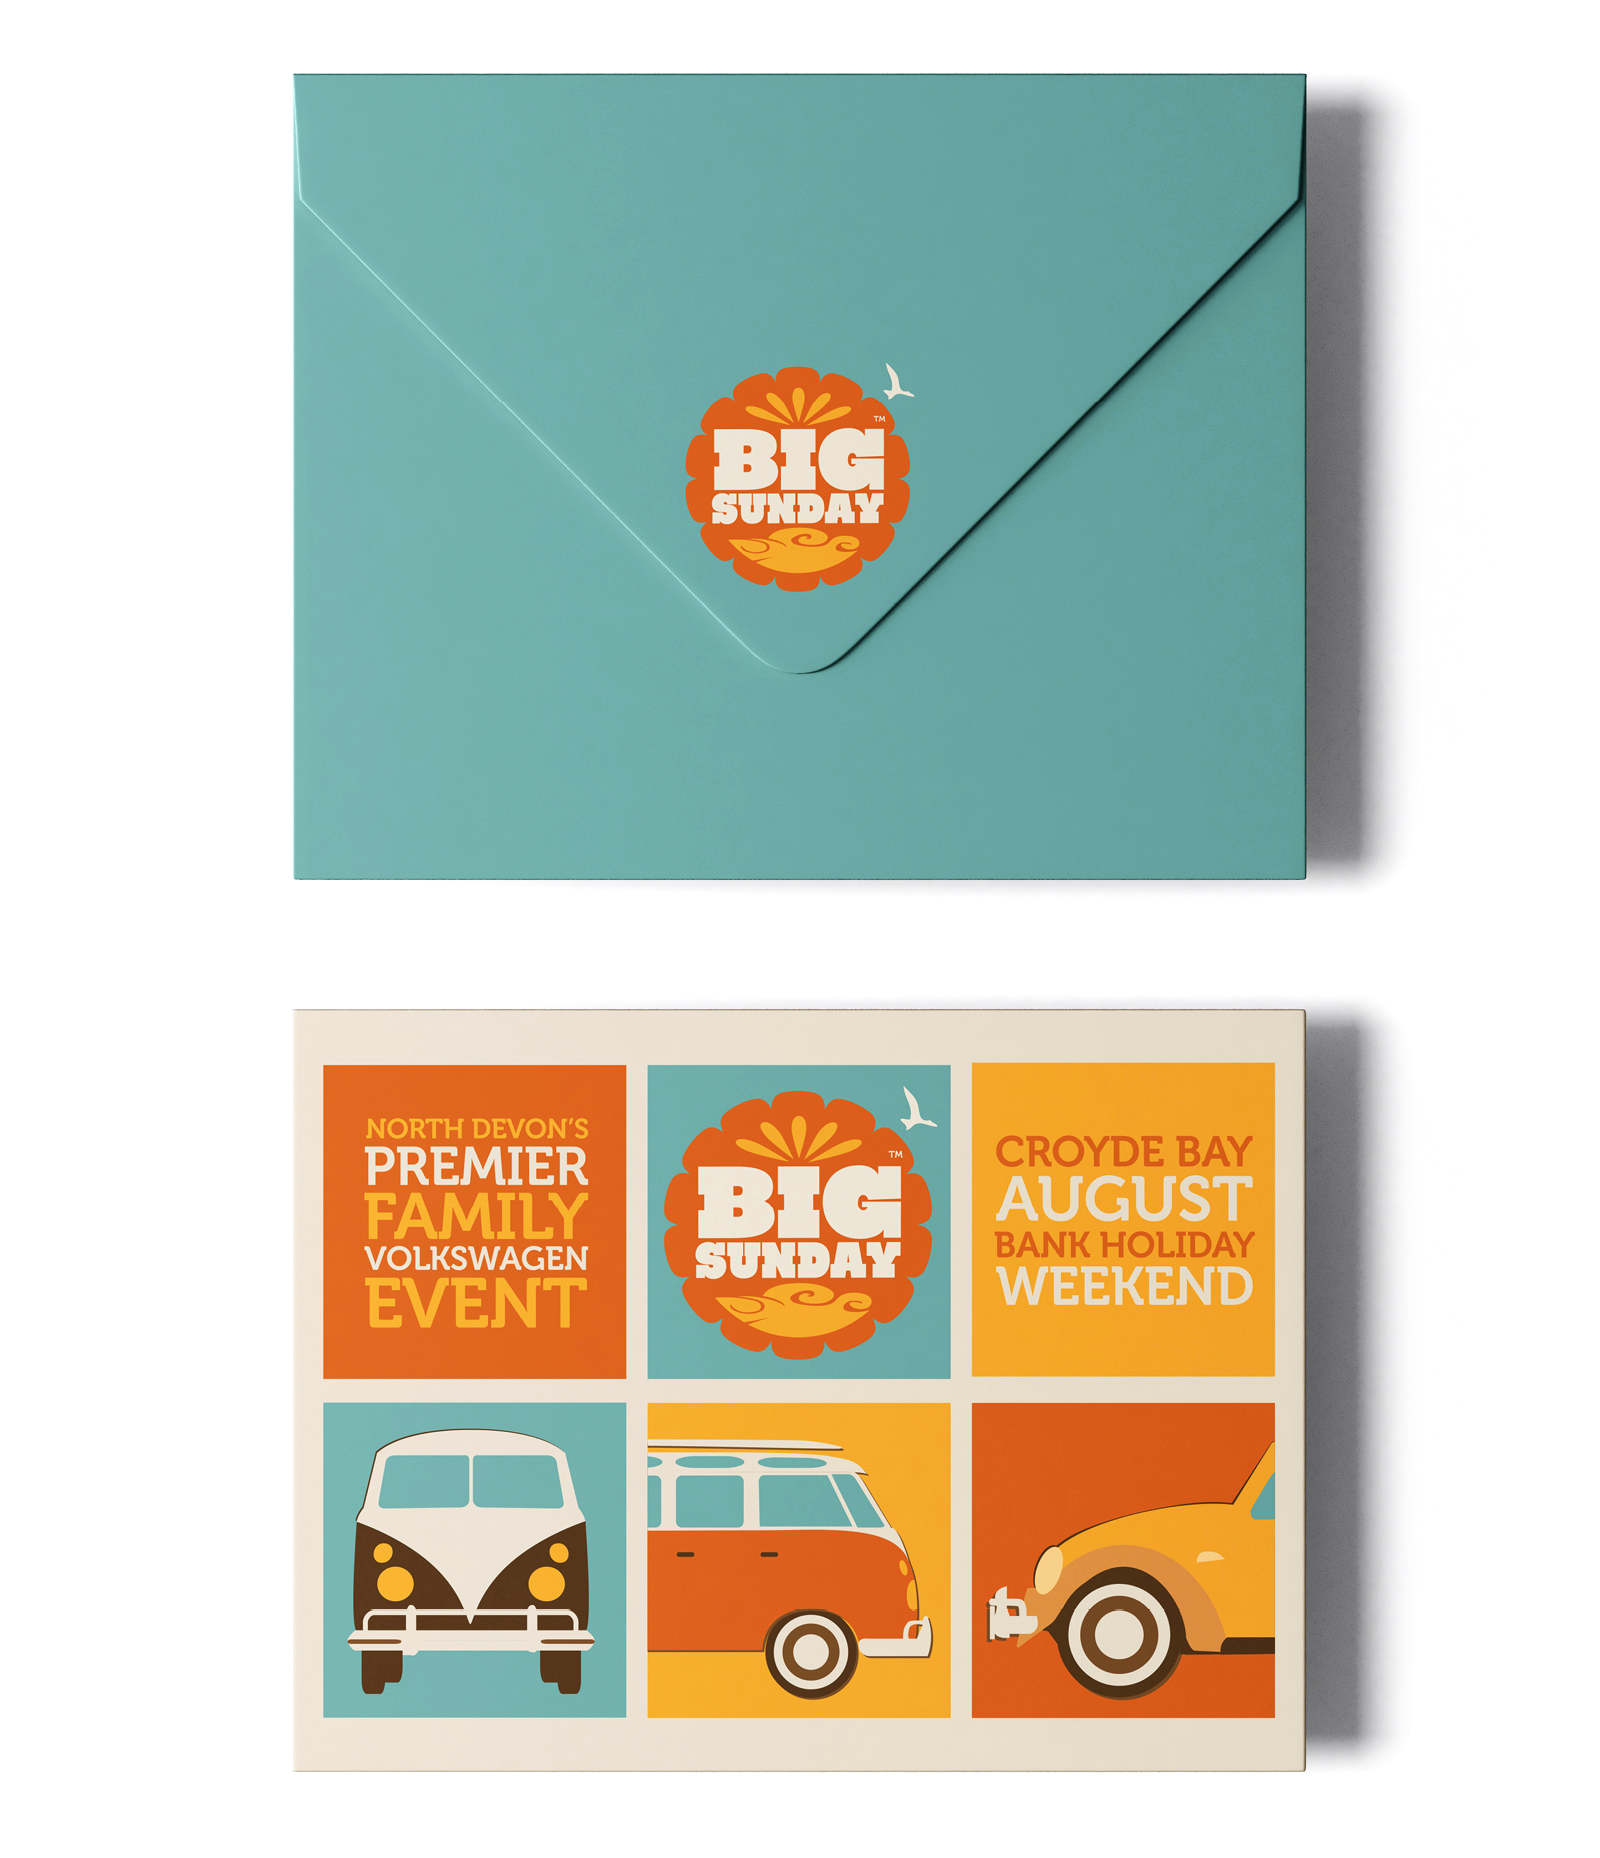 direct mail campaign and branding for a charity festival